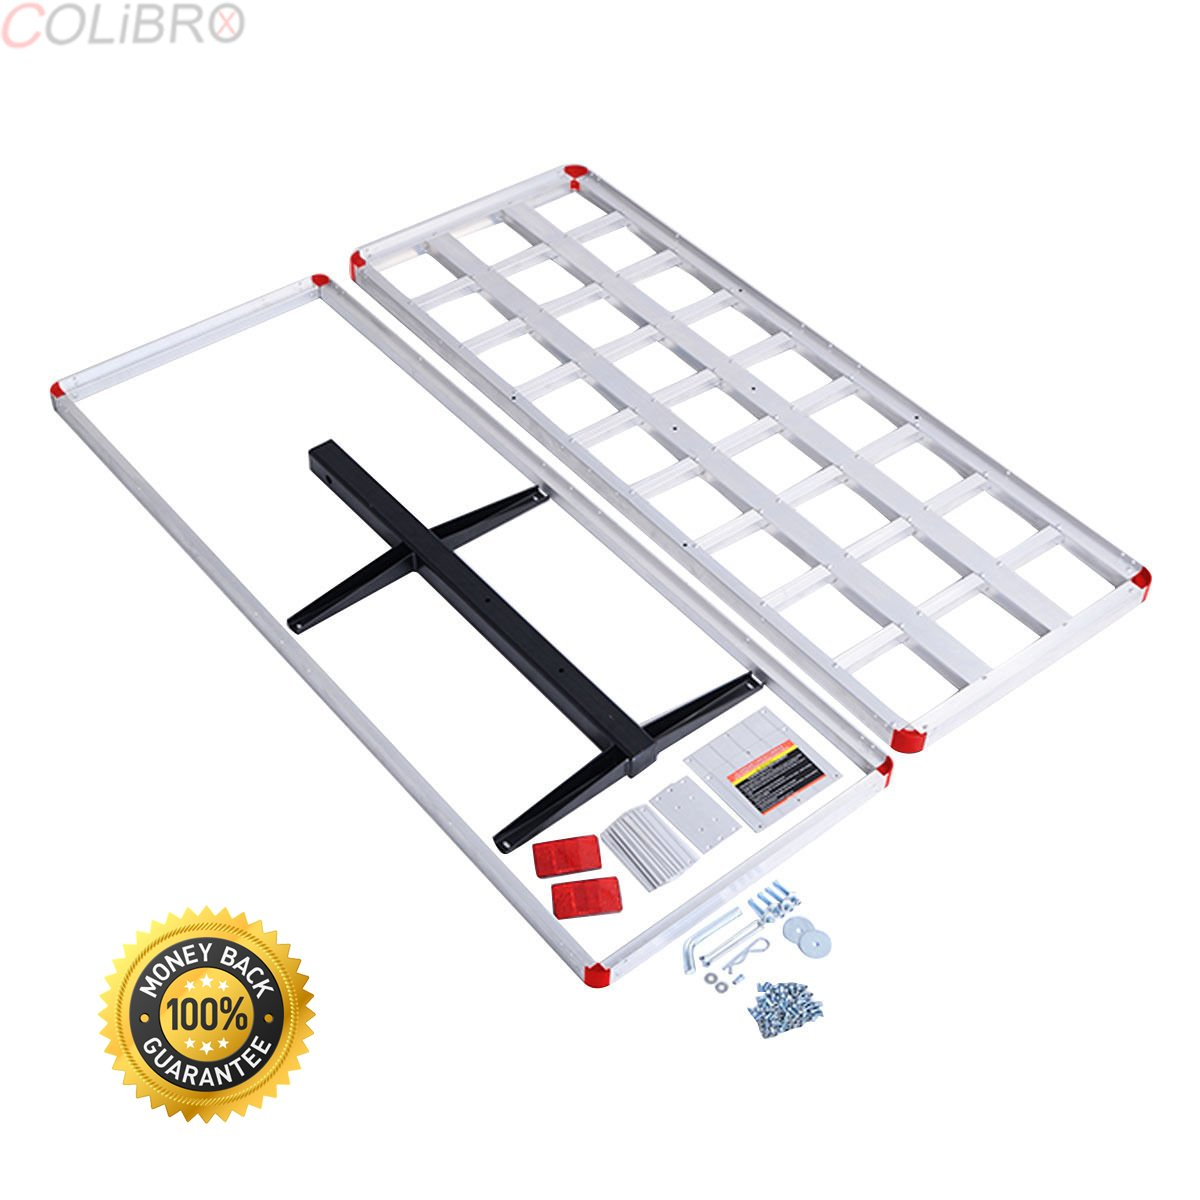 COLIBROX--60'' x 22'' Aluminum RV 2'' Hitch Mount Cargo Carrier Truck Luggage Basket 500LBS--Material: Aluminum Dimension:60''x 22''x7'' (L x W x H) Weight Capacity: 500lbs Weight:20 lbs